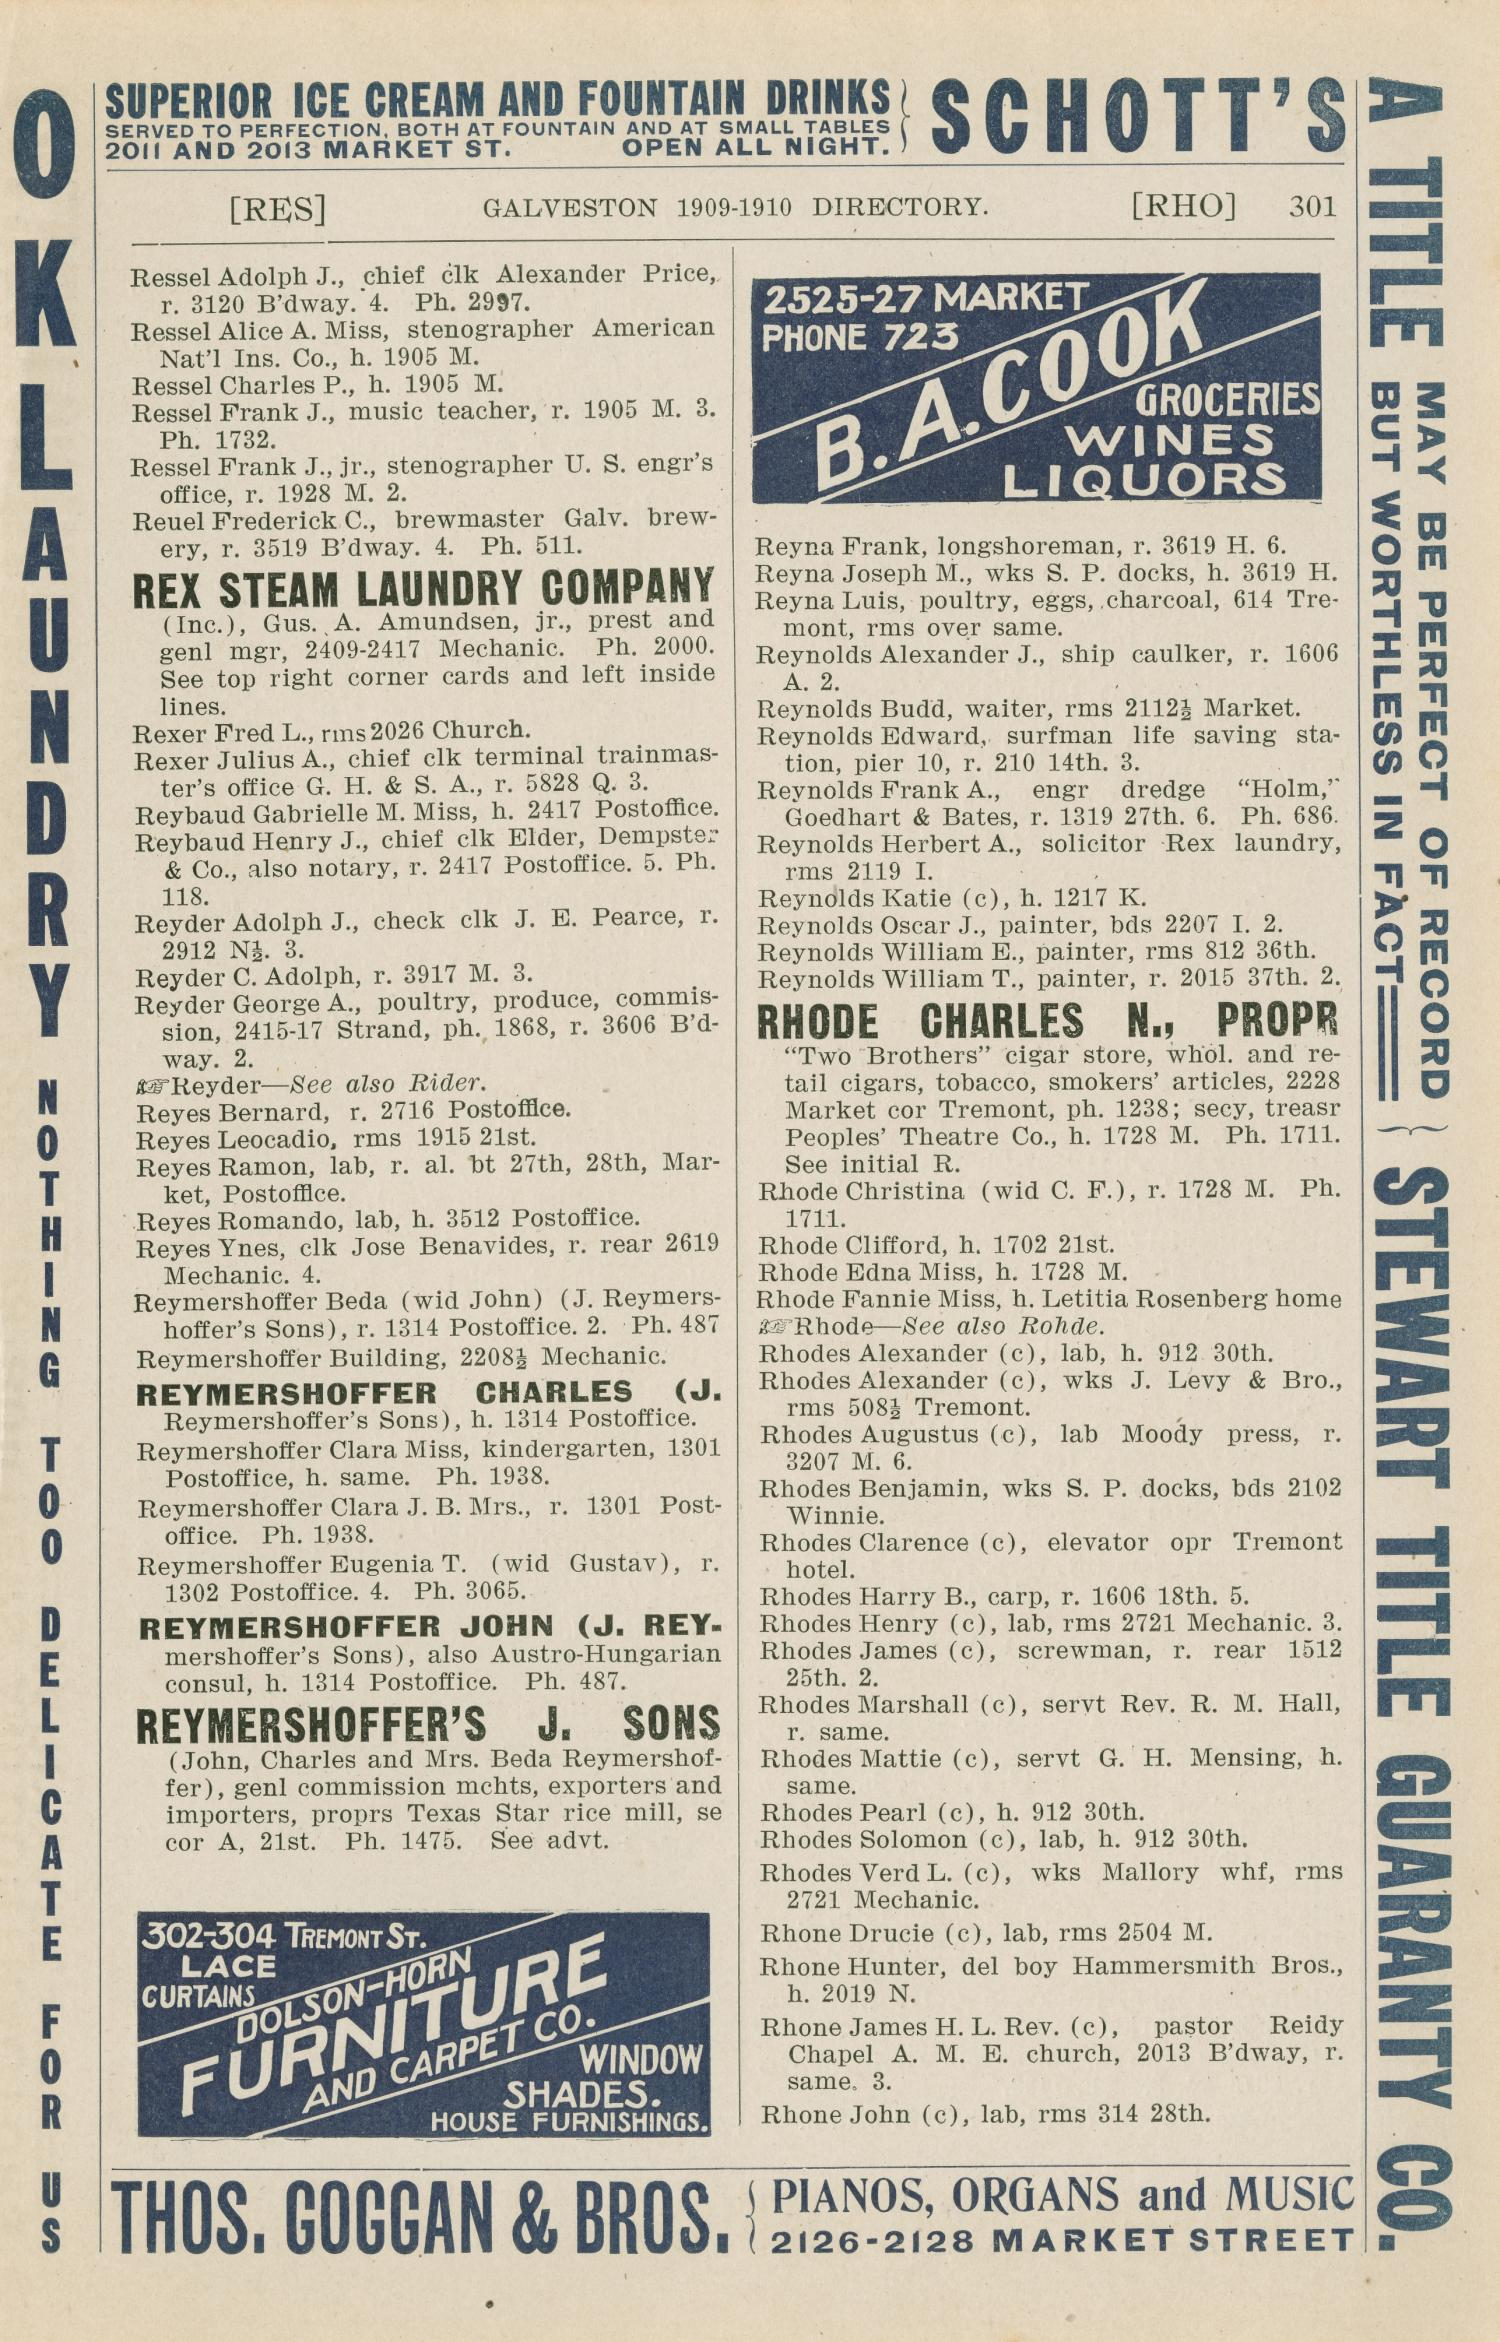 Morrison & Fourmy's General Directory of the City of